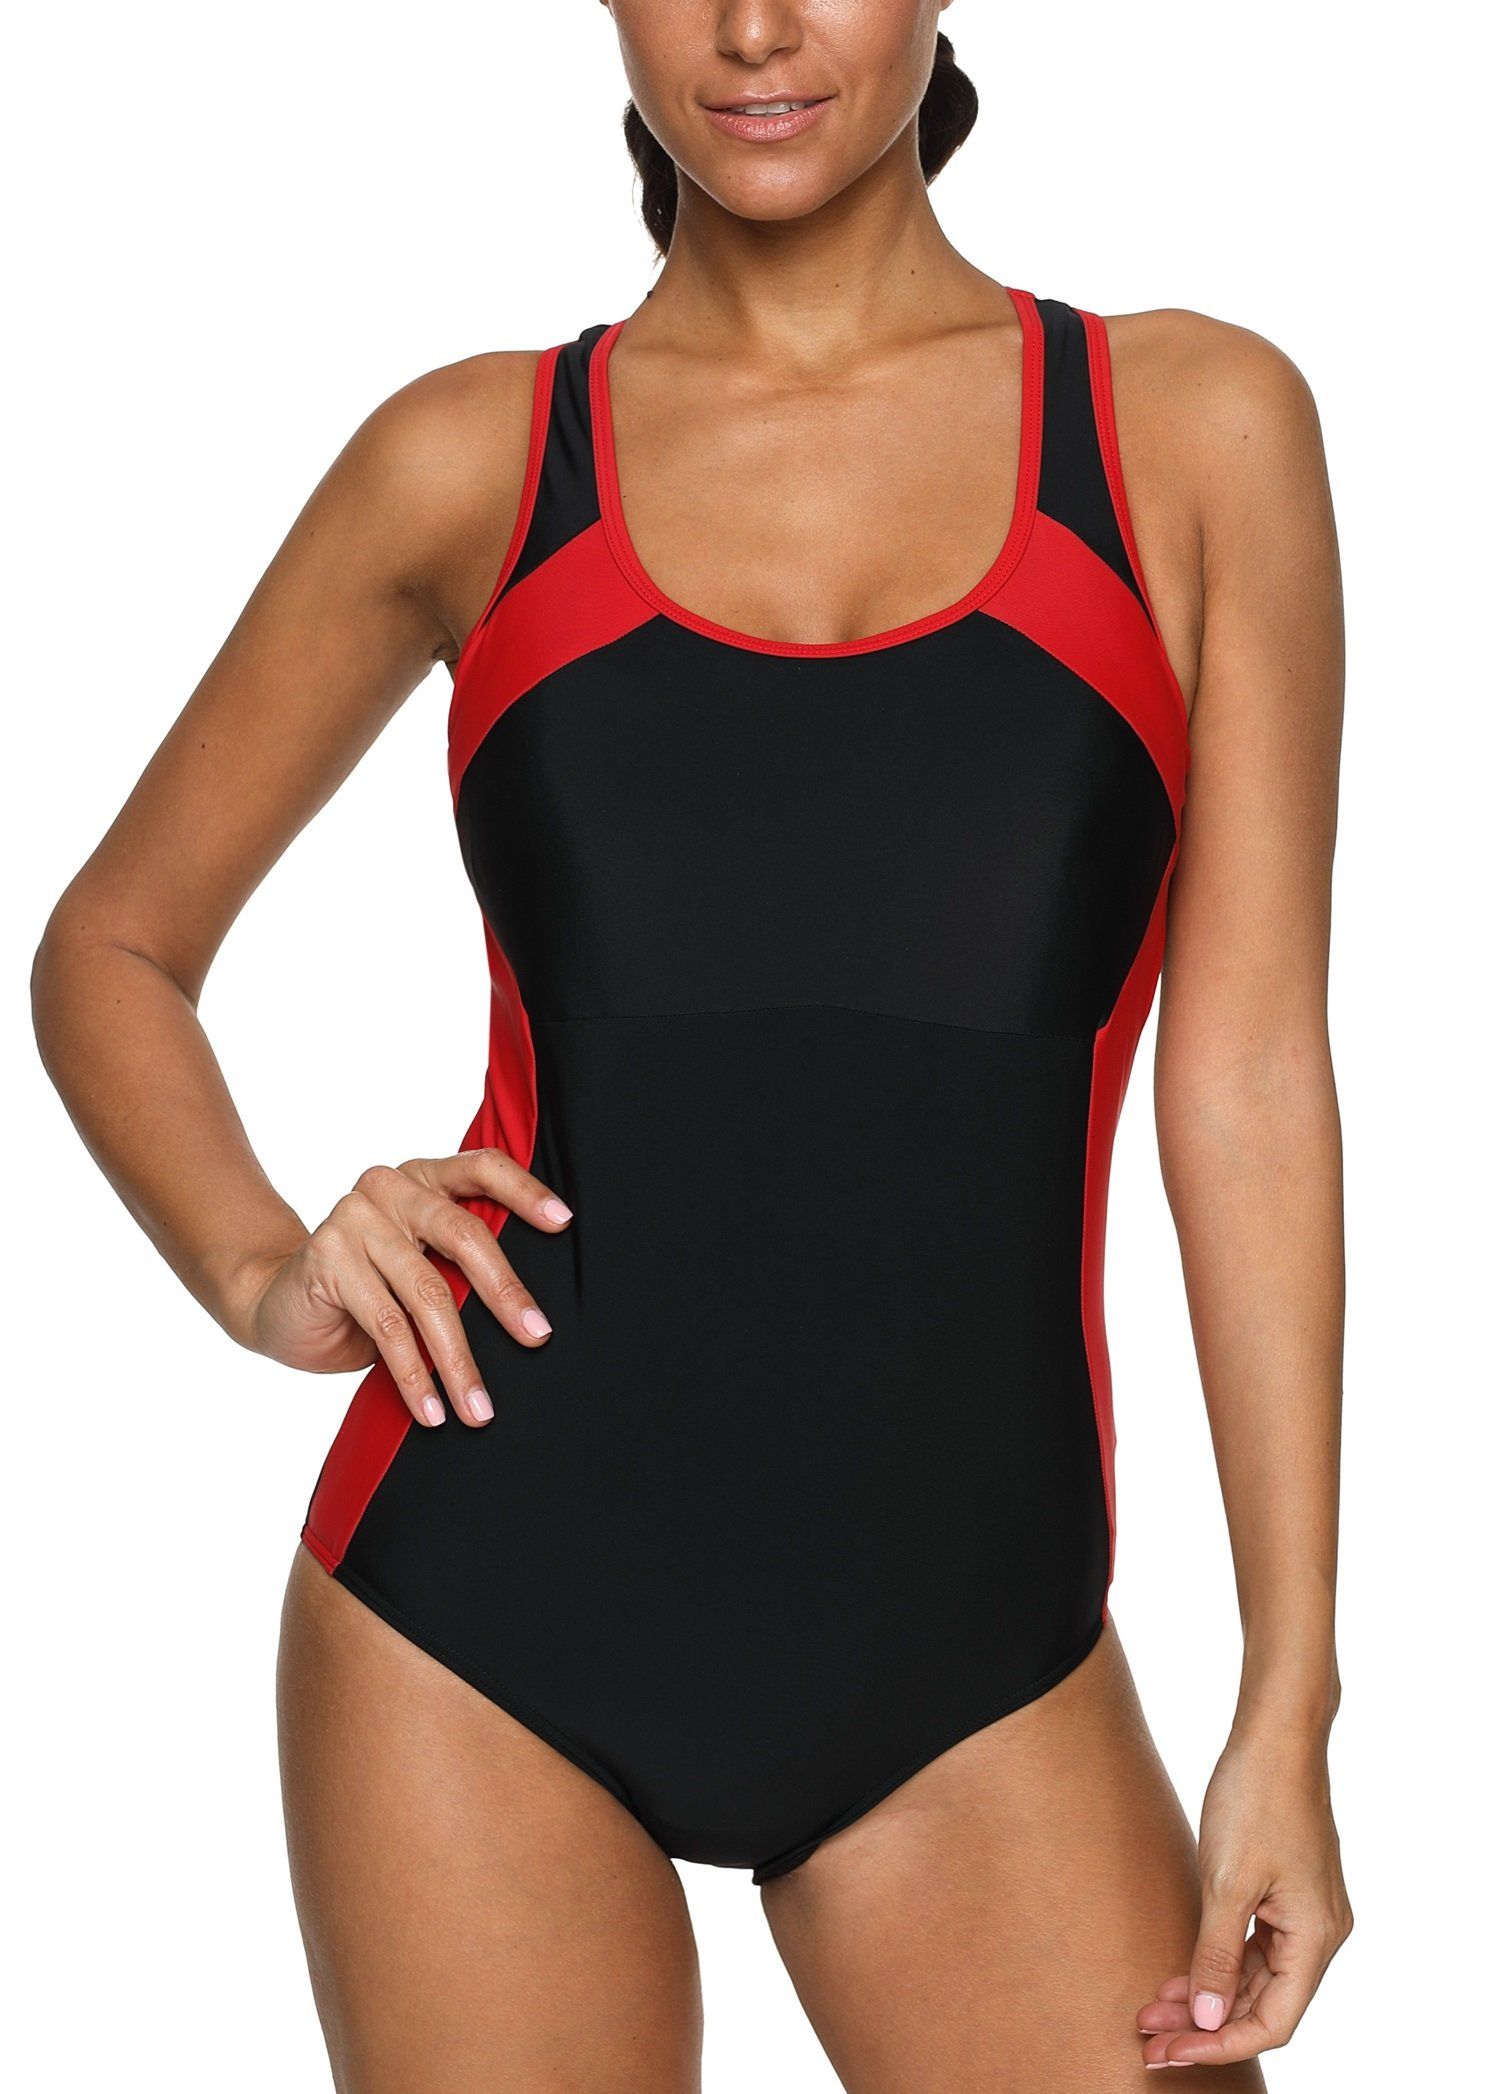 ATTRACO Woman Workout Activewear Swimsuit Racerback Athletic Bathing Swimming Suit Black XL by ATTRACO